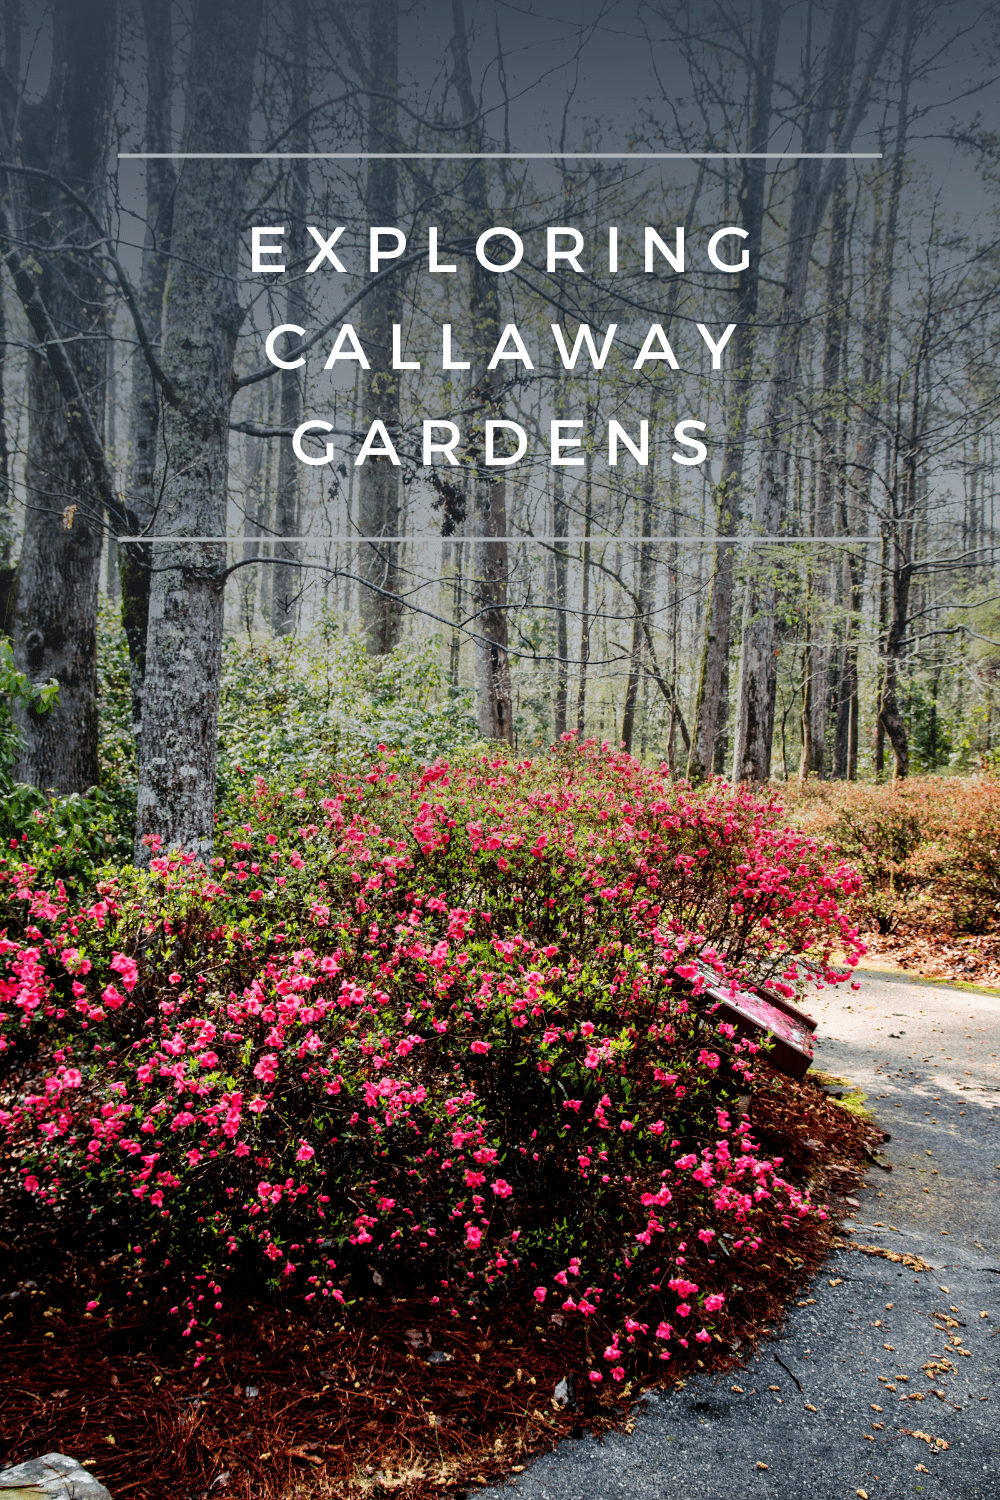 Callaway Gardens is more than just beautiful gardens and a perfect place for families to enjoy all year long.